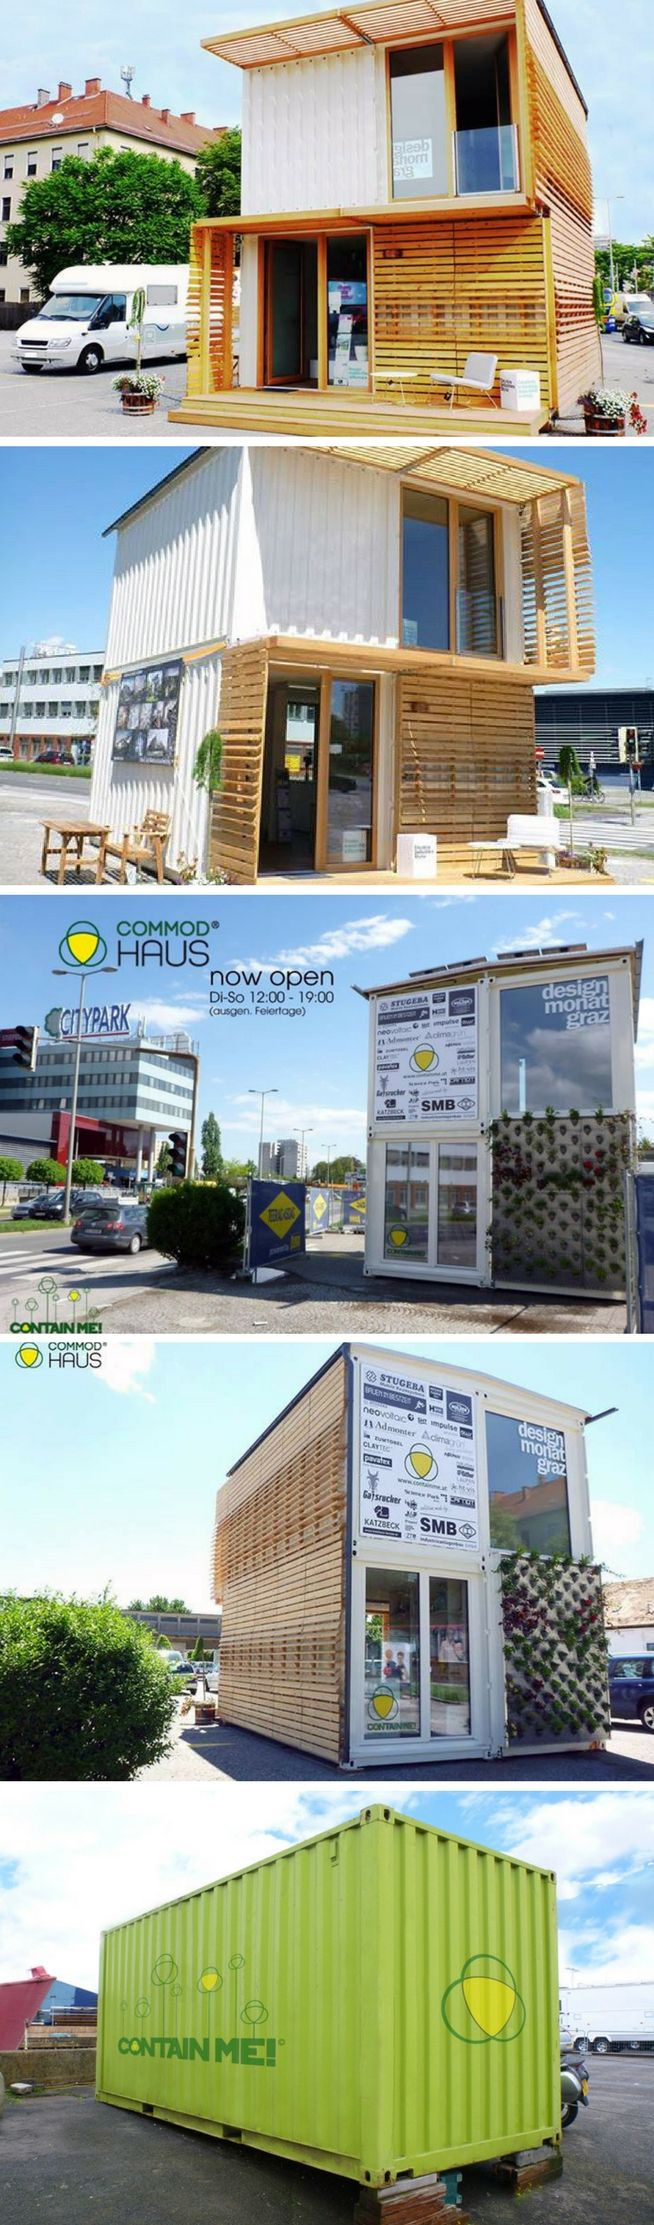 Container Haus Graz Commod Shipping Container House Art Space Pinterest